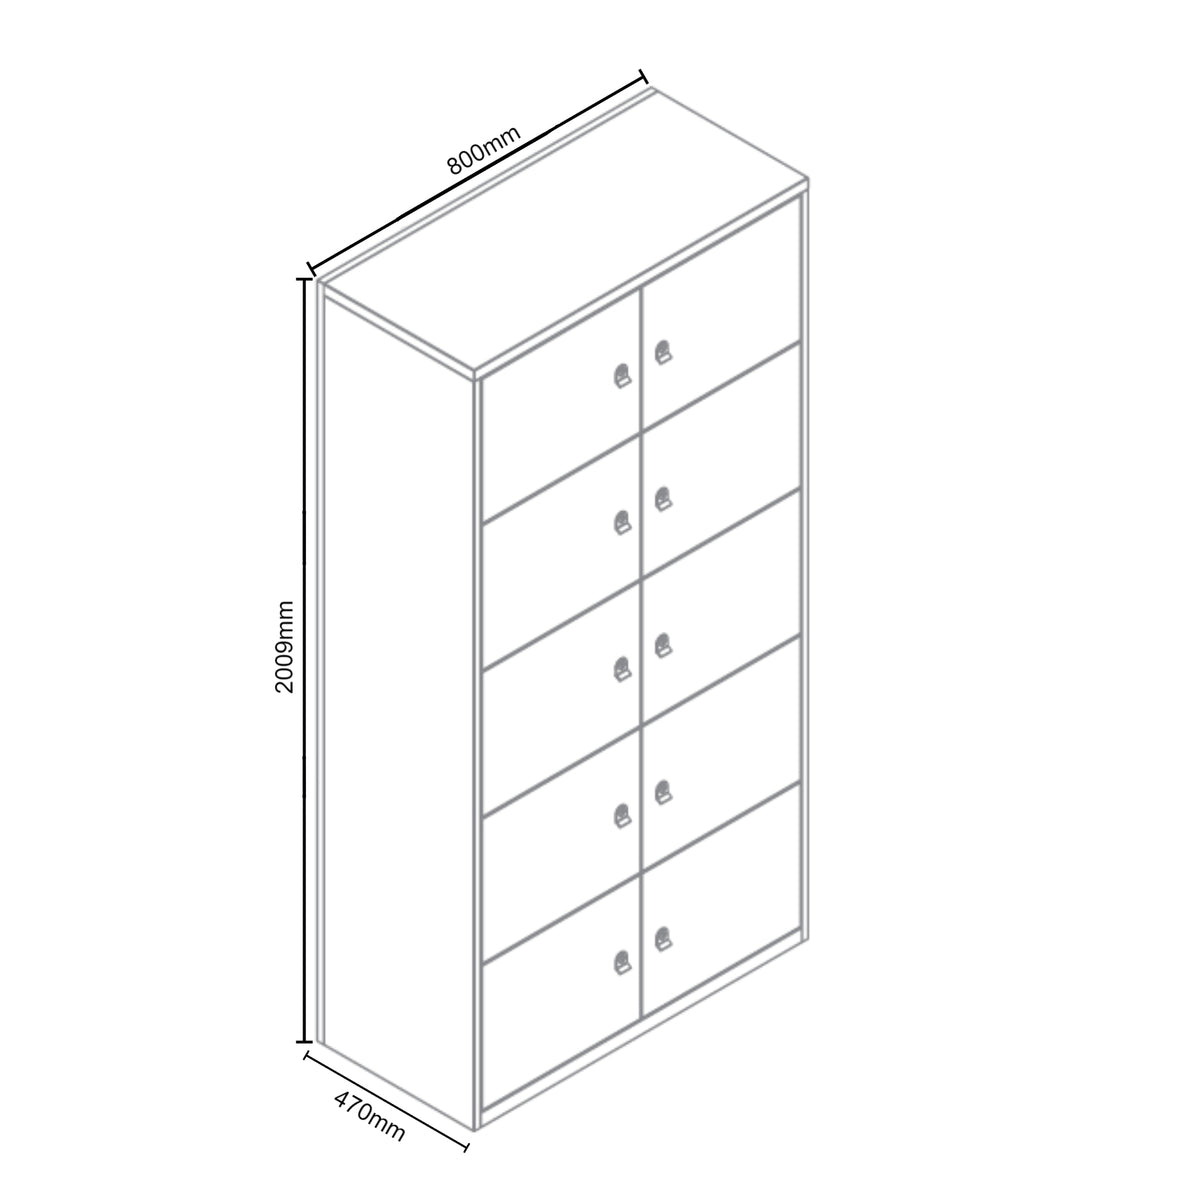 Dimensions for Bisley Metal Office Ten Door LateralFile Locker